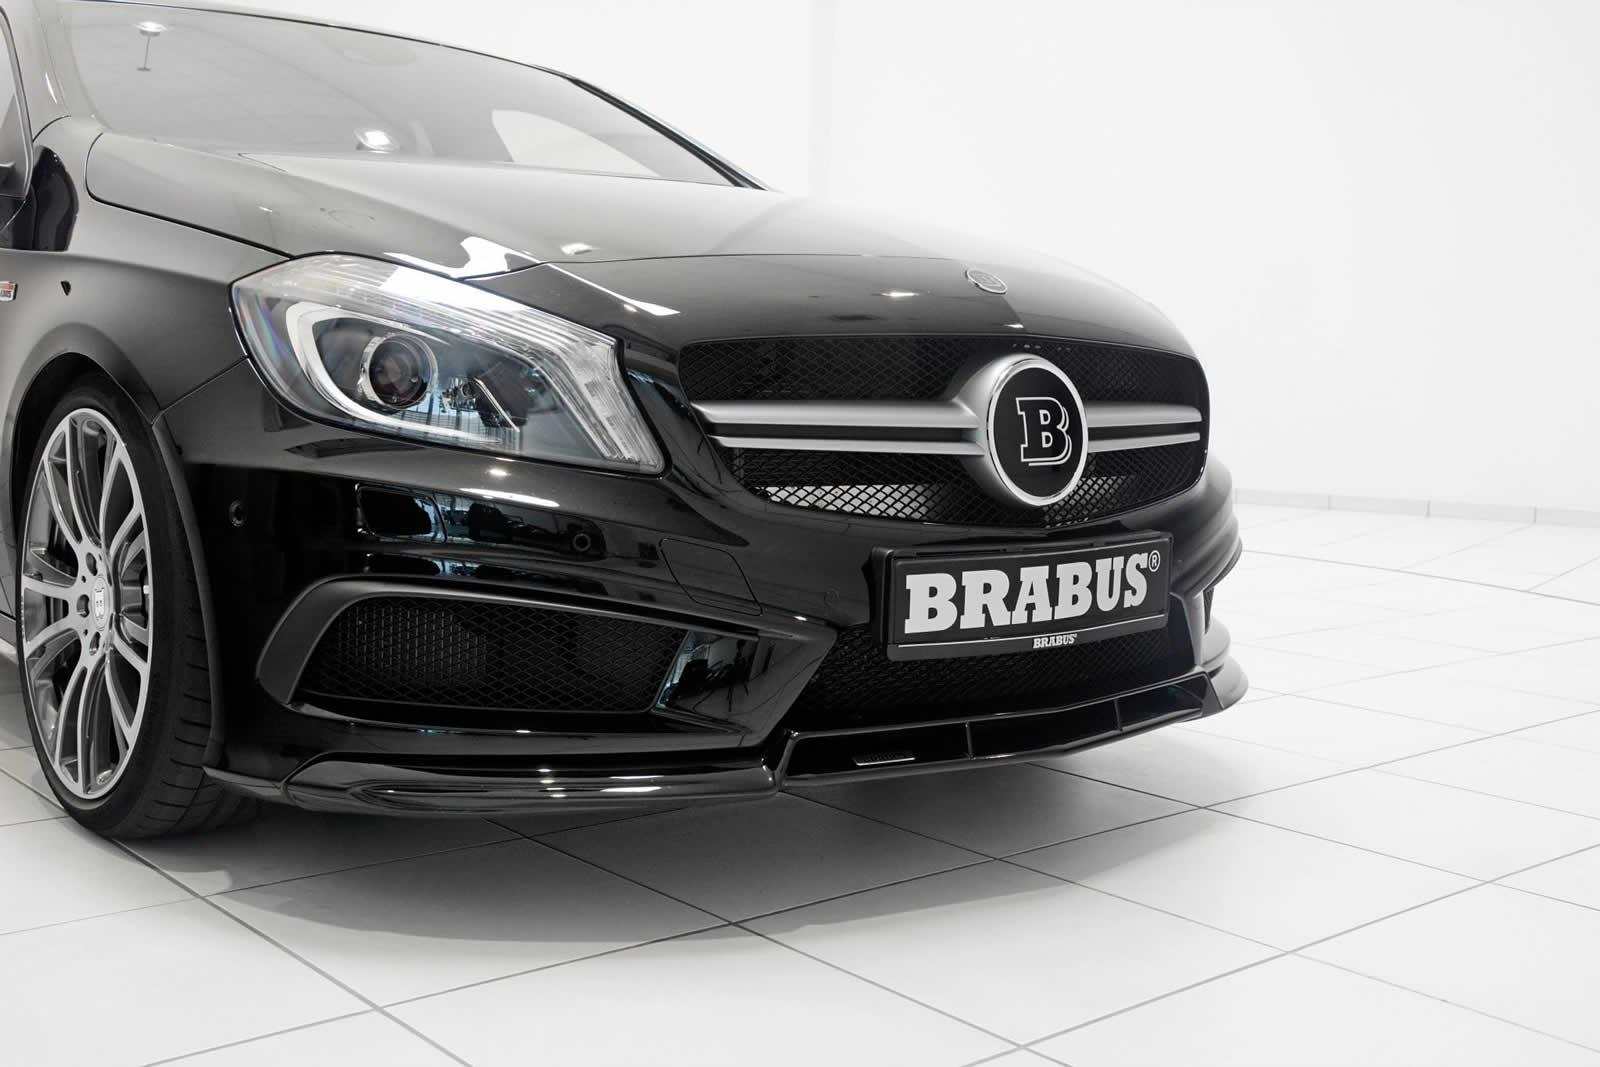 brabus donne la a45 amg quelques chevaux de plus. Black Bedroom Furniture Sets. Home Design Ideas